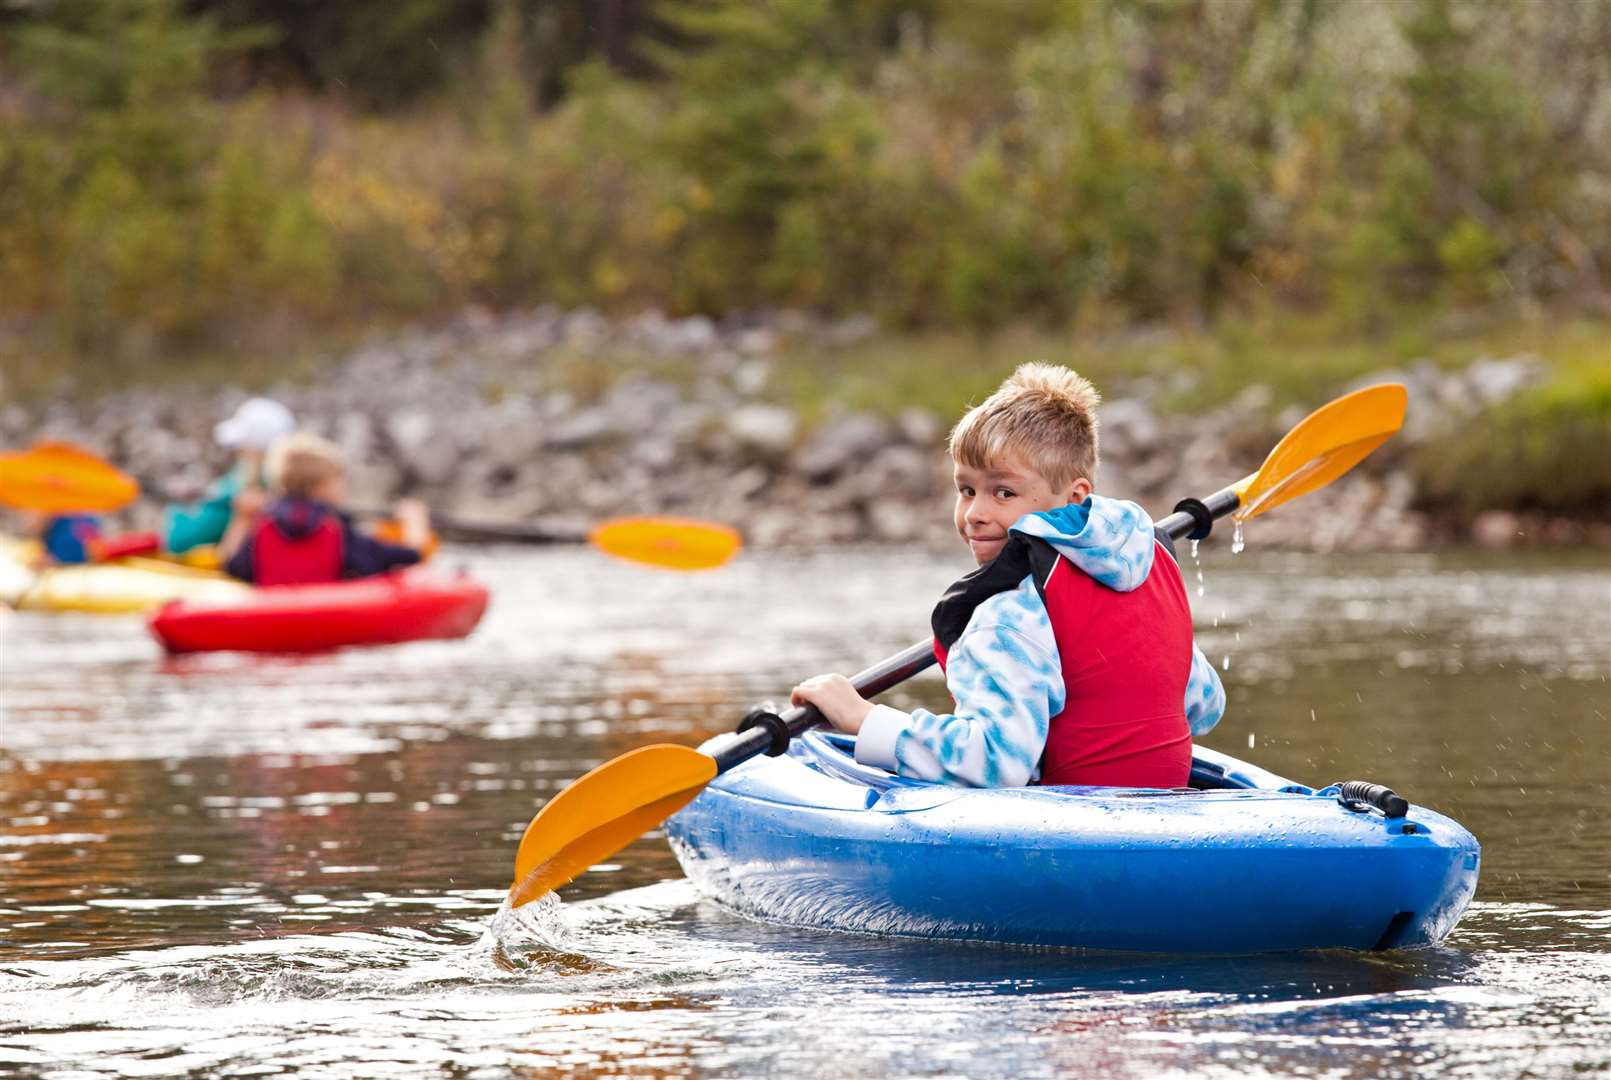 Try kayaking or canoeing to cool down